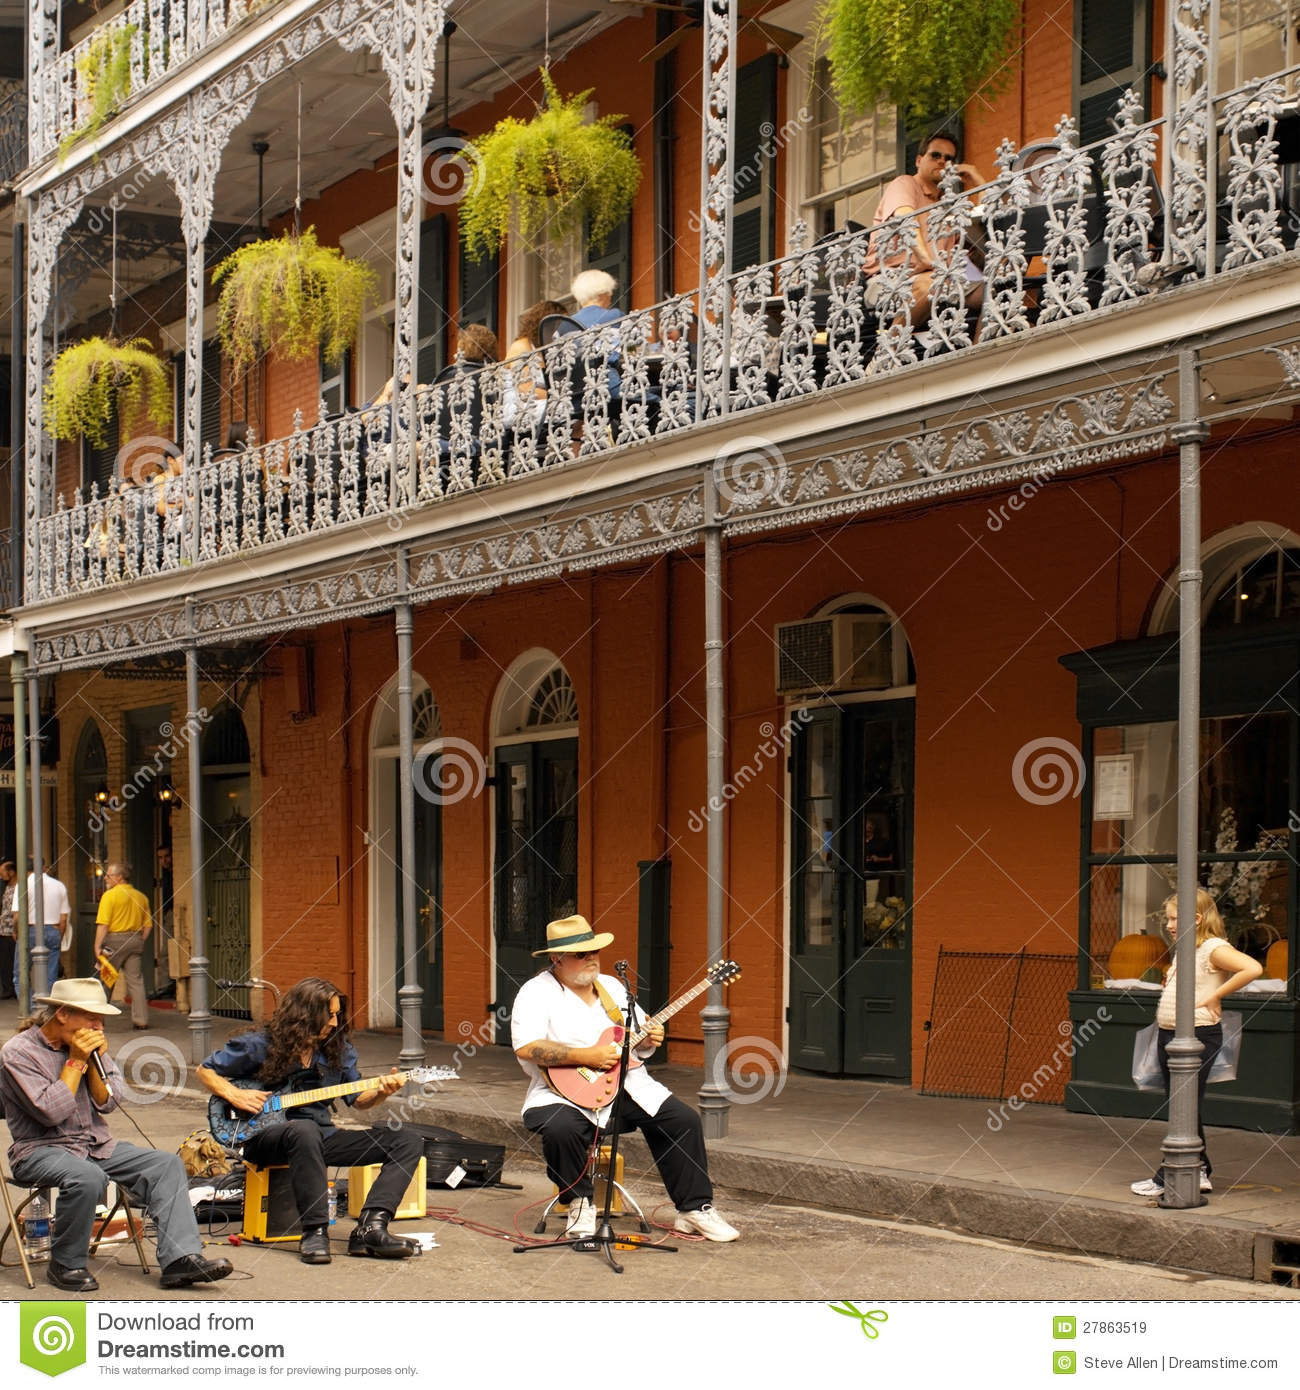 New Orleans - United States of America